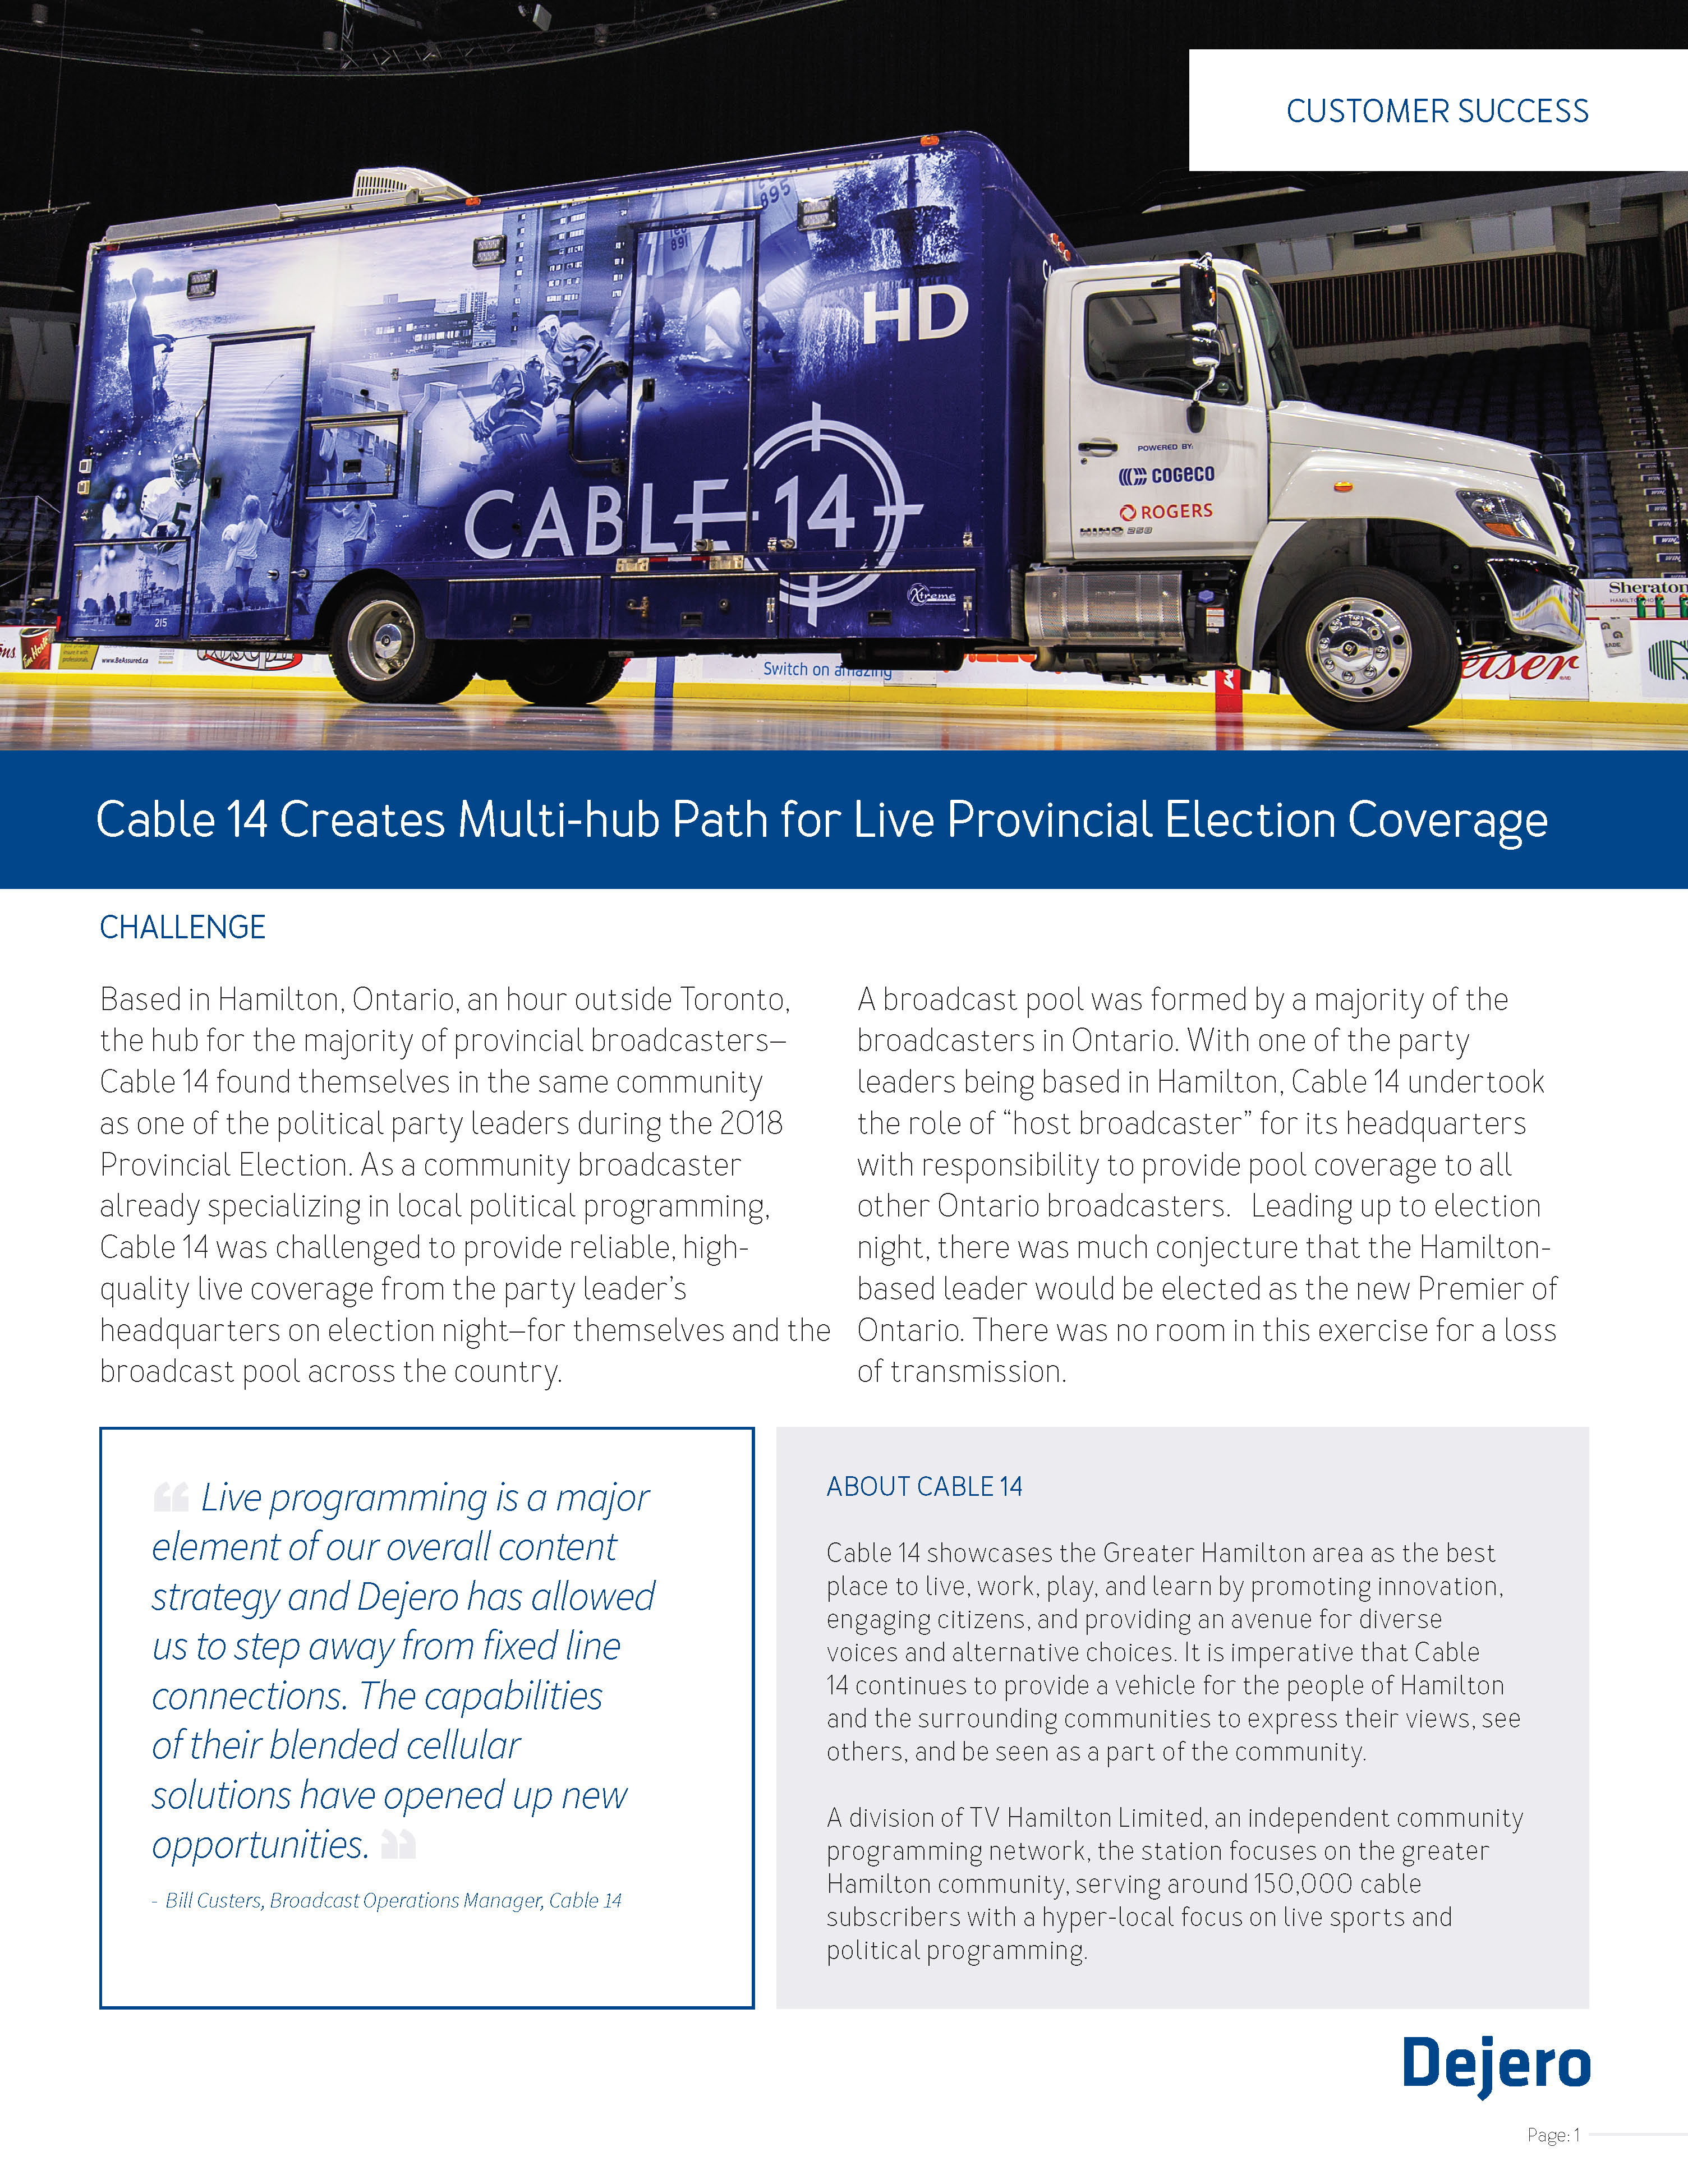 Dejero Customer Success Story - Cable-14_Page_1